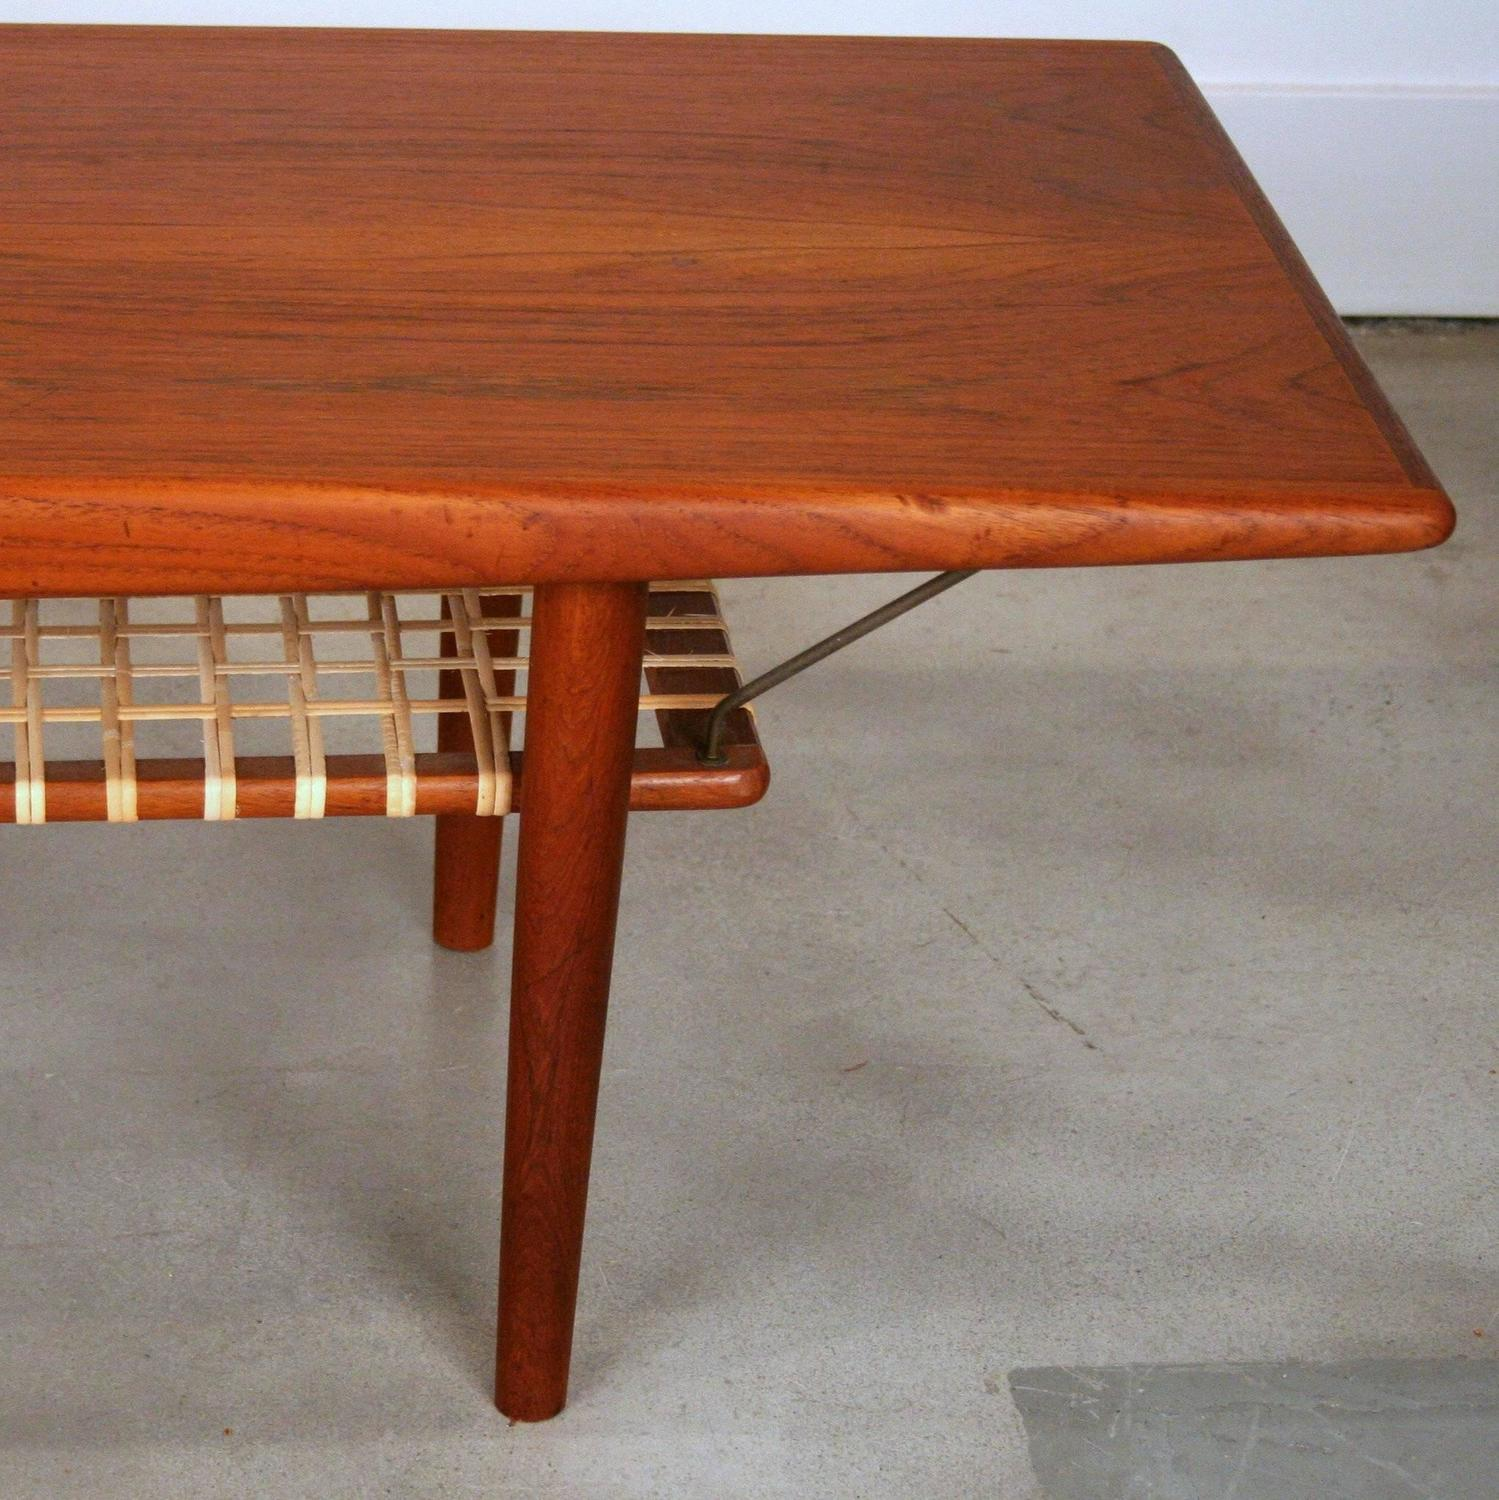 Vintage Danish Teak Coffee Table With Cane Shelf For Sale At 1stdibs